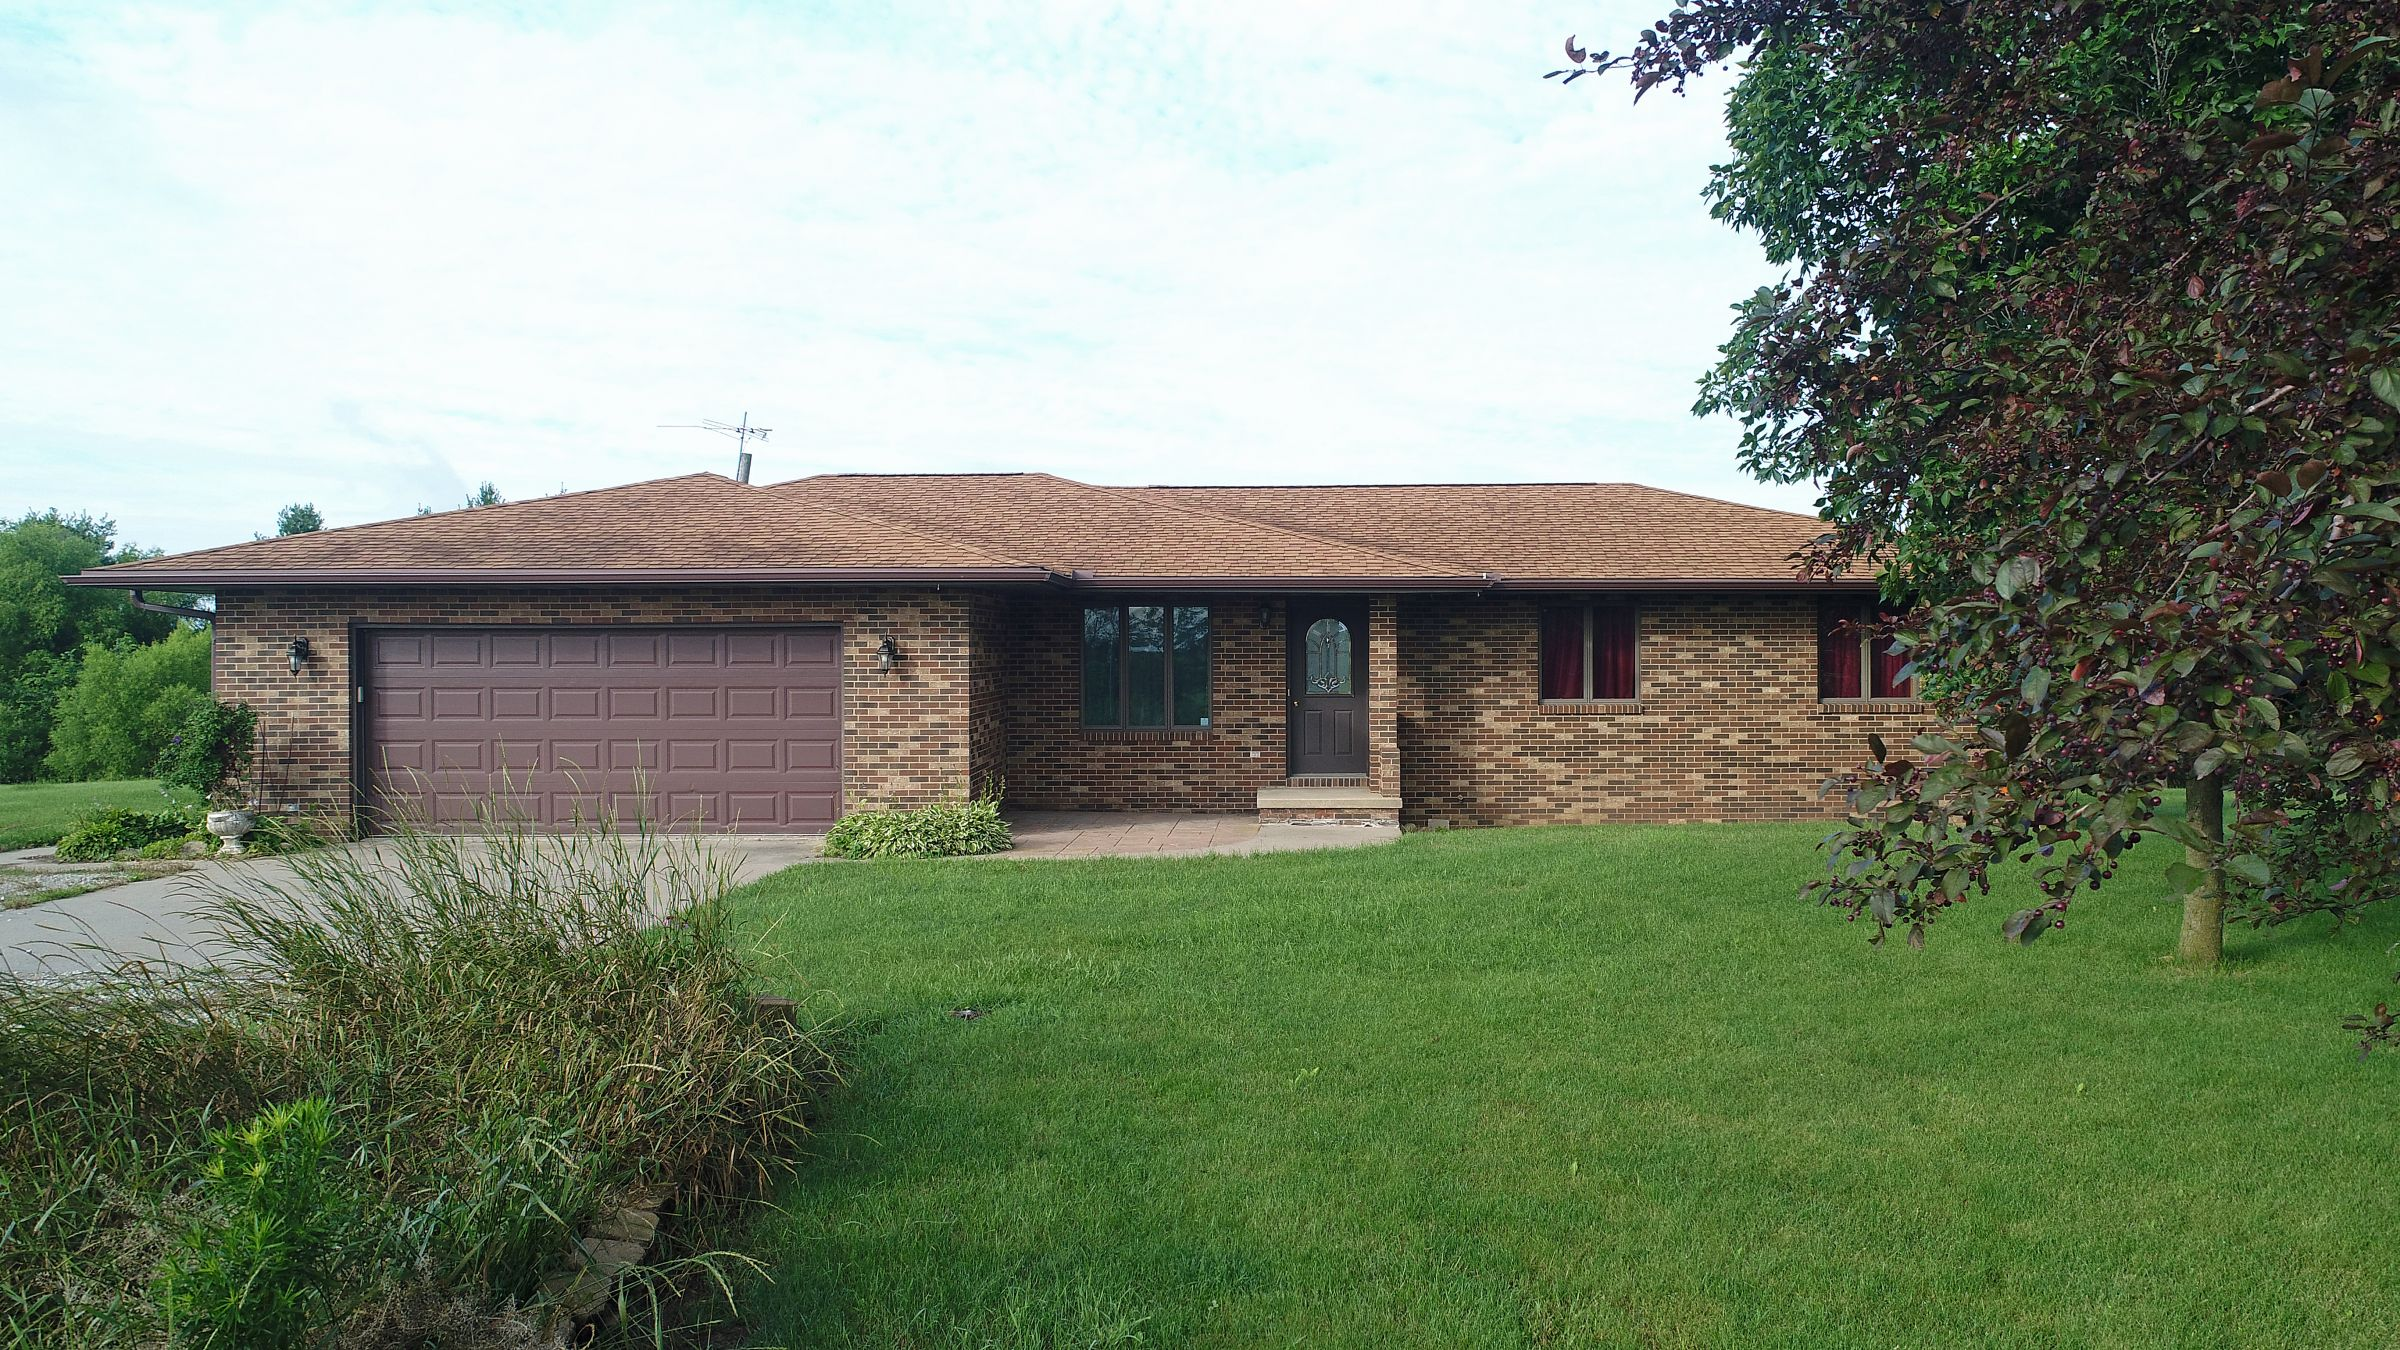 residential-lucas-county-iowa-9-acres-listing-number-15618-3-2021-06-30-170623.JPG